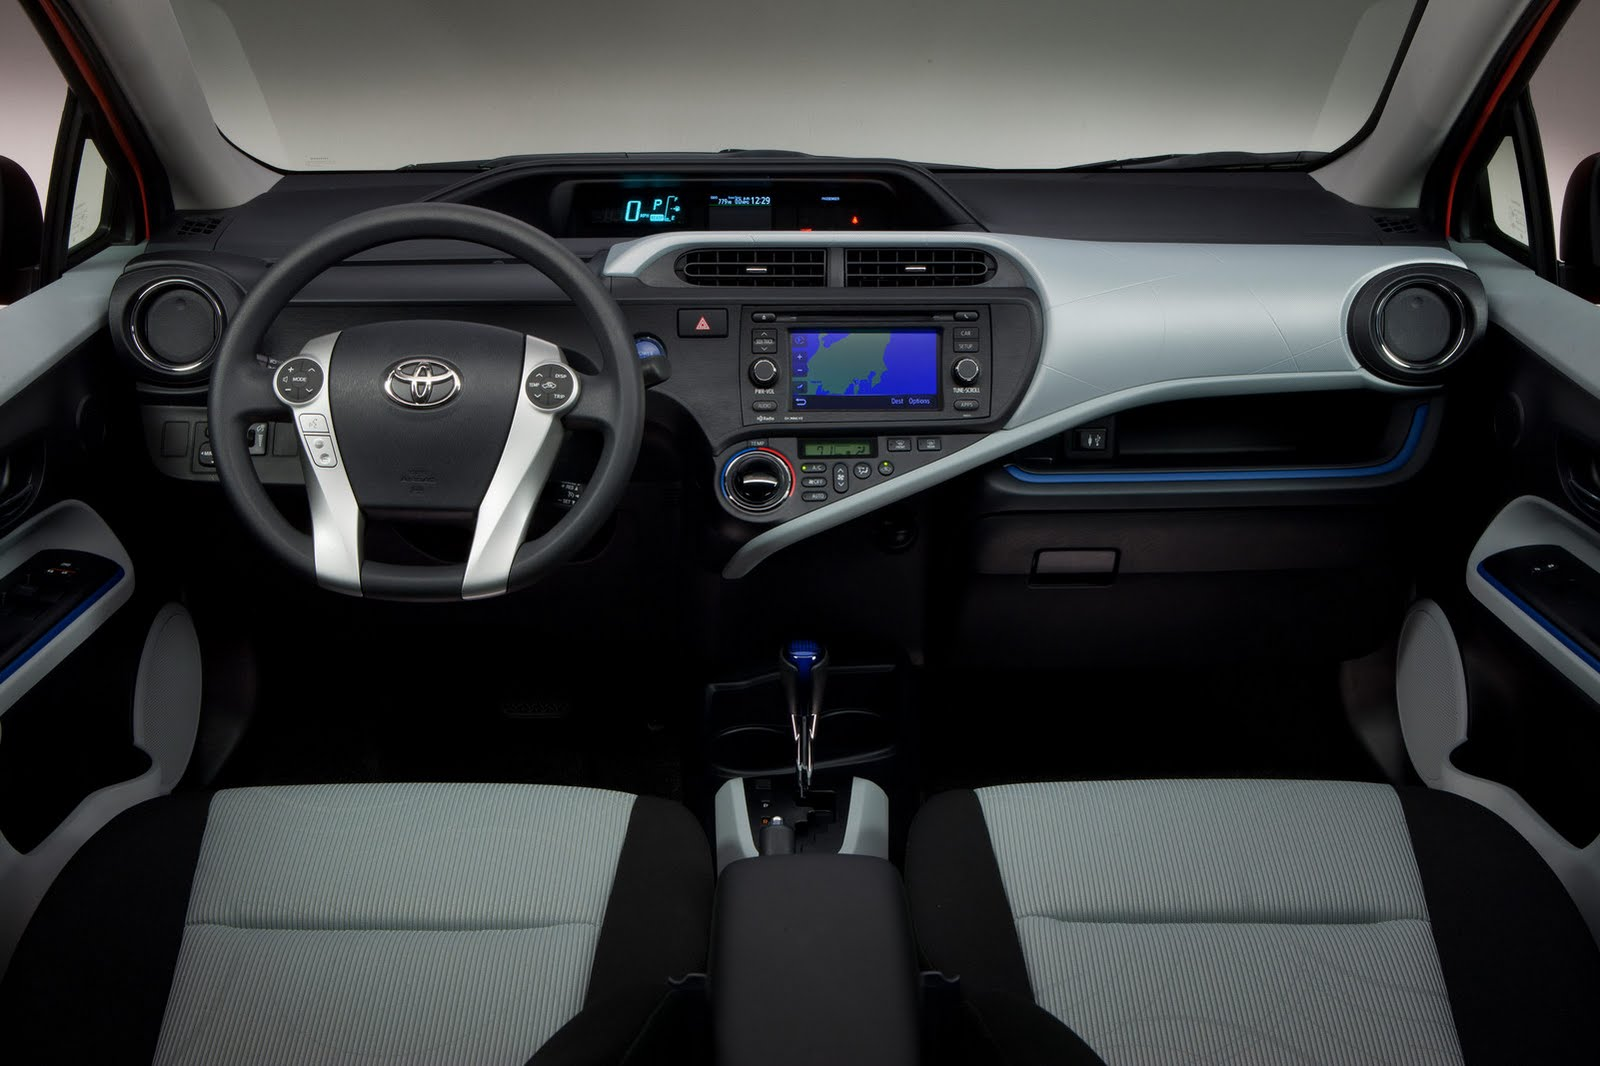 New Toyota Prius C North America In Japan It Is Aqua and in Rest of the World as Prius   Toyota to Launch These Sophisticated Cars